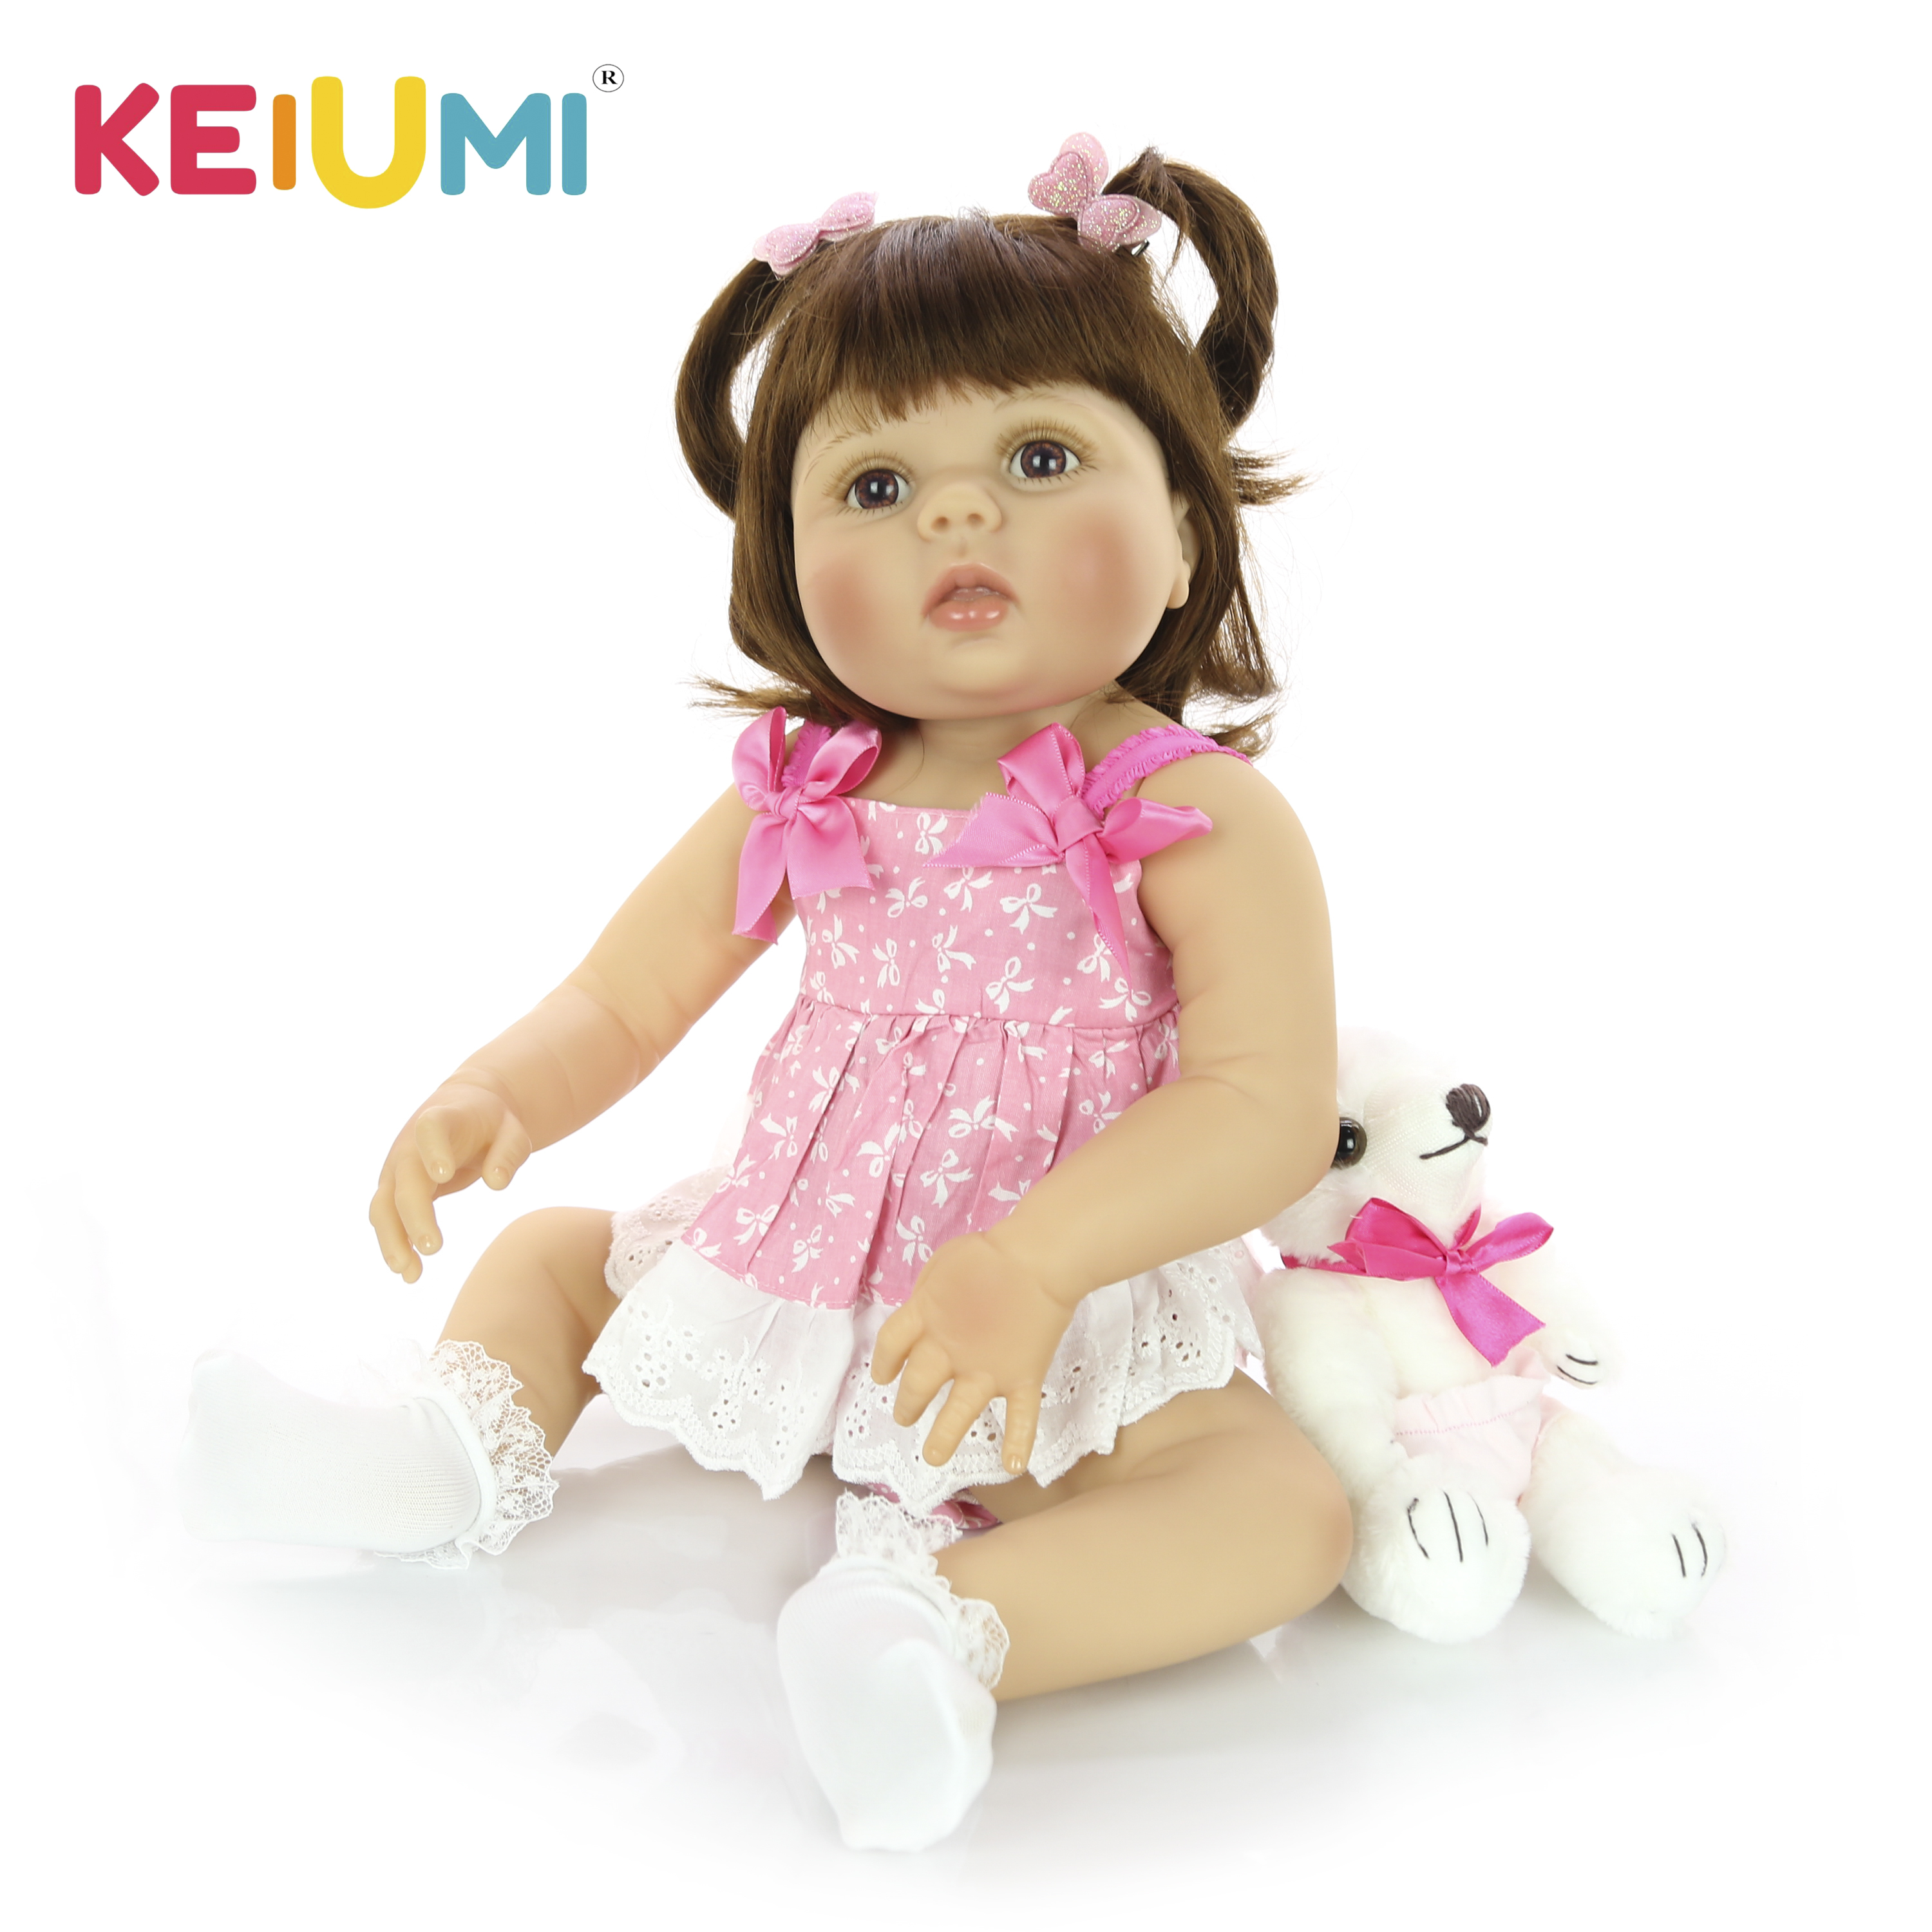 KEIUMI 2019 Reborn Girl Doll 23 57cm Reborn Boneca Lovely Full Body Silicone Doll For Children